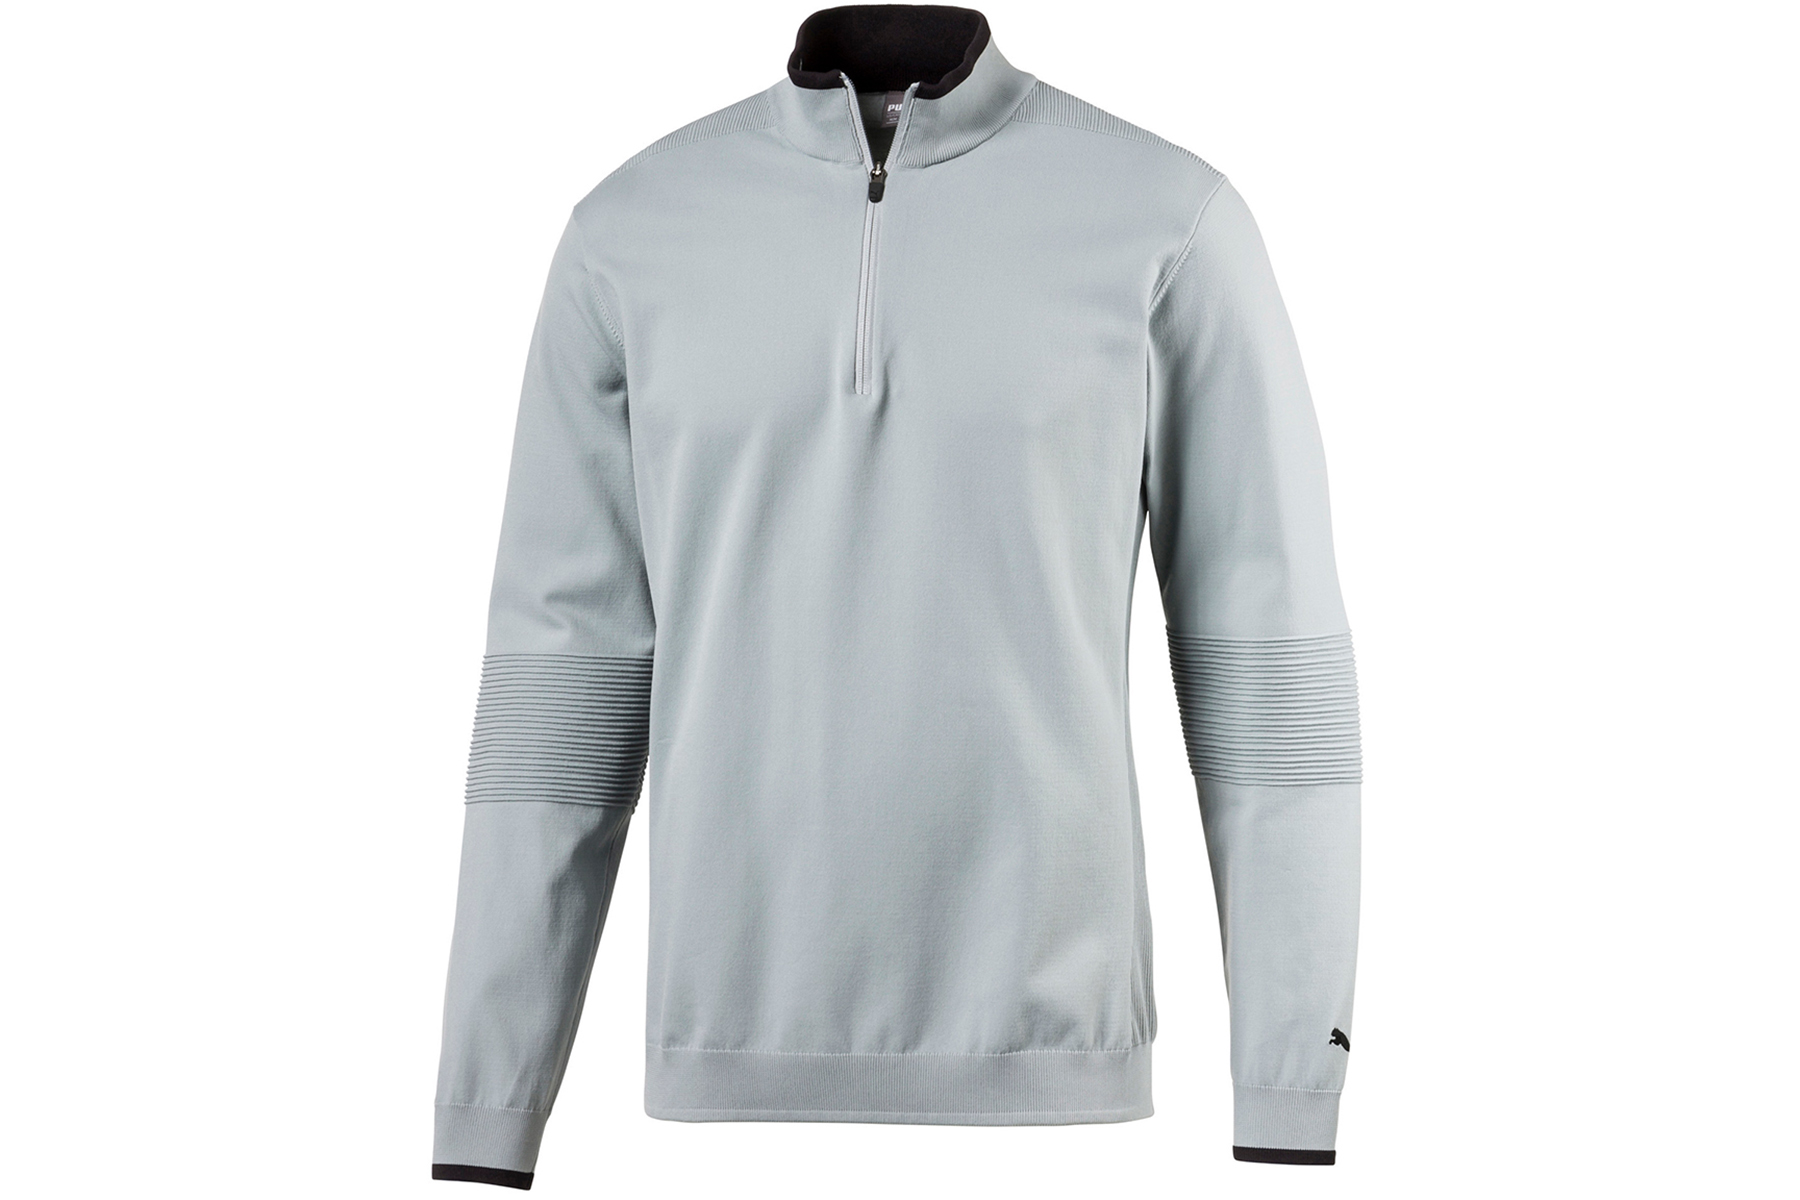 Puma golf evoknit 1 4 zip sweater from american golf for Housse zip collection captur